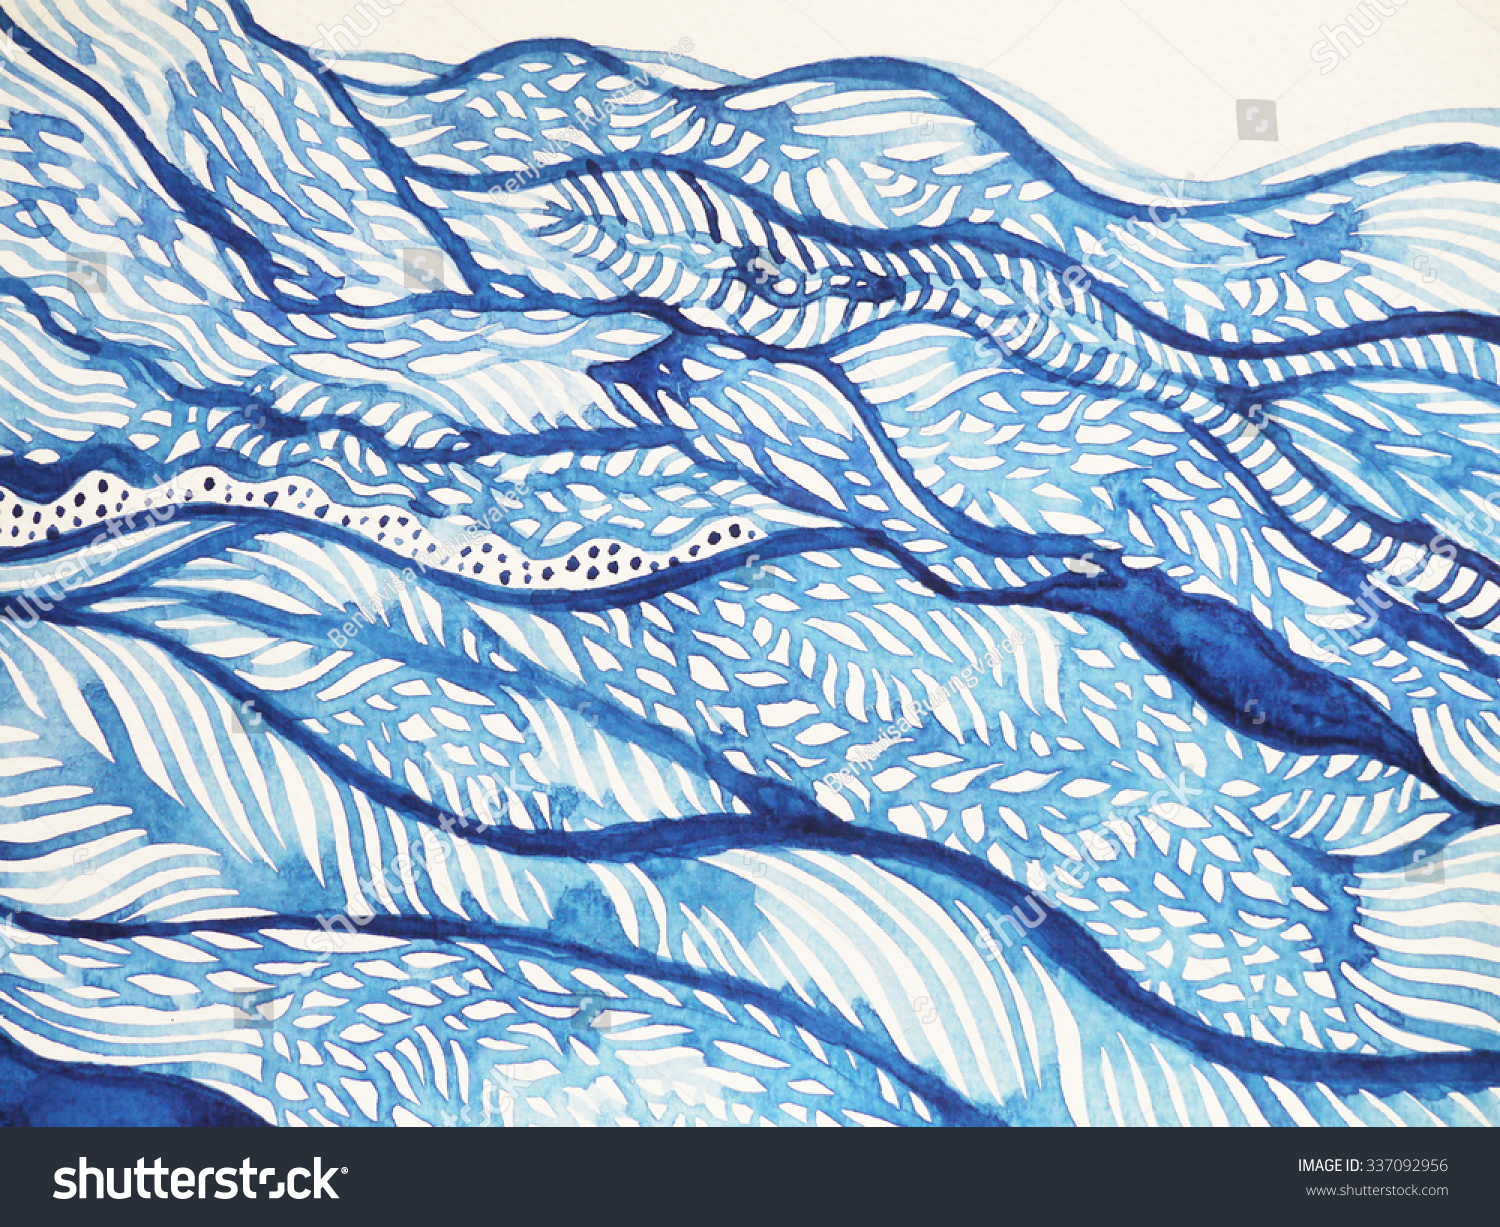 abstract blue wave cloud hill nature stock illustration 337092956